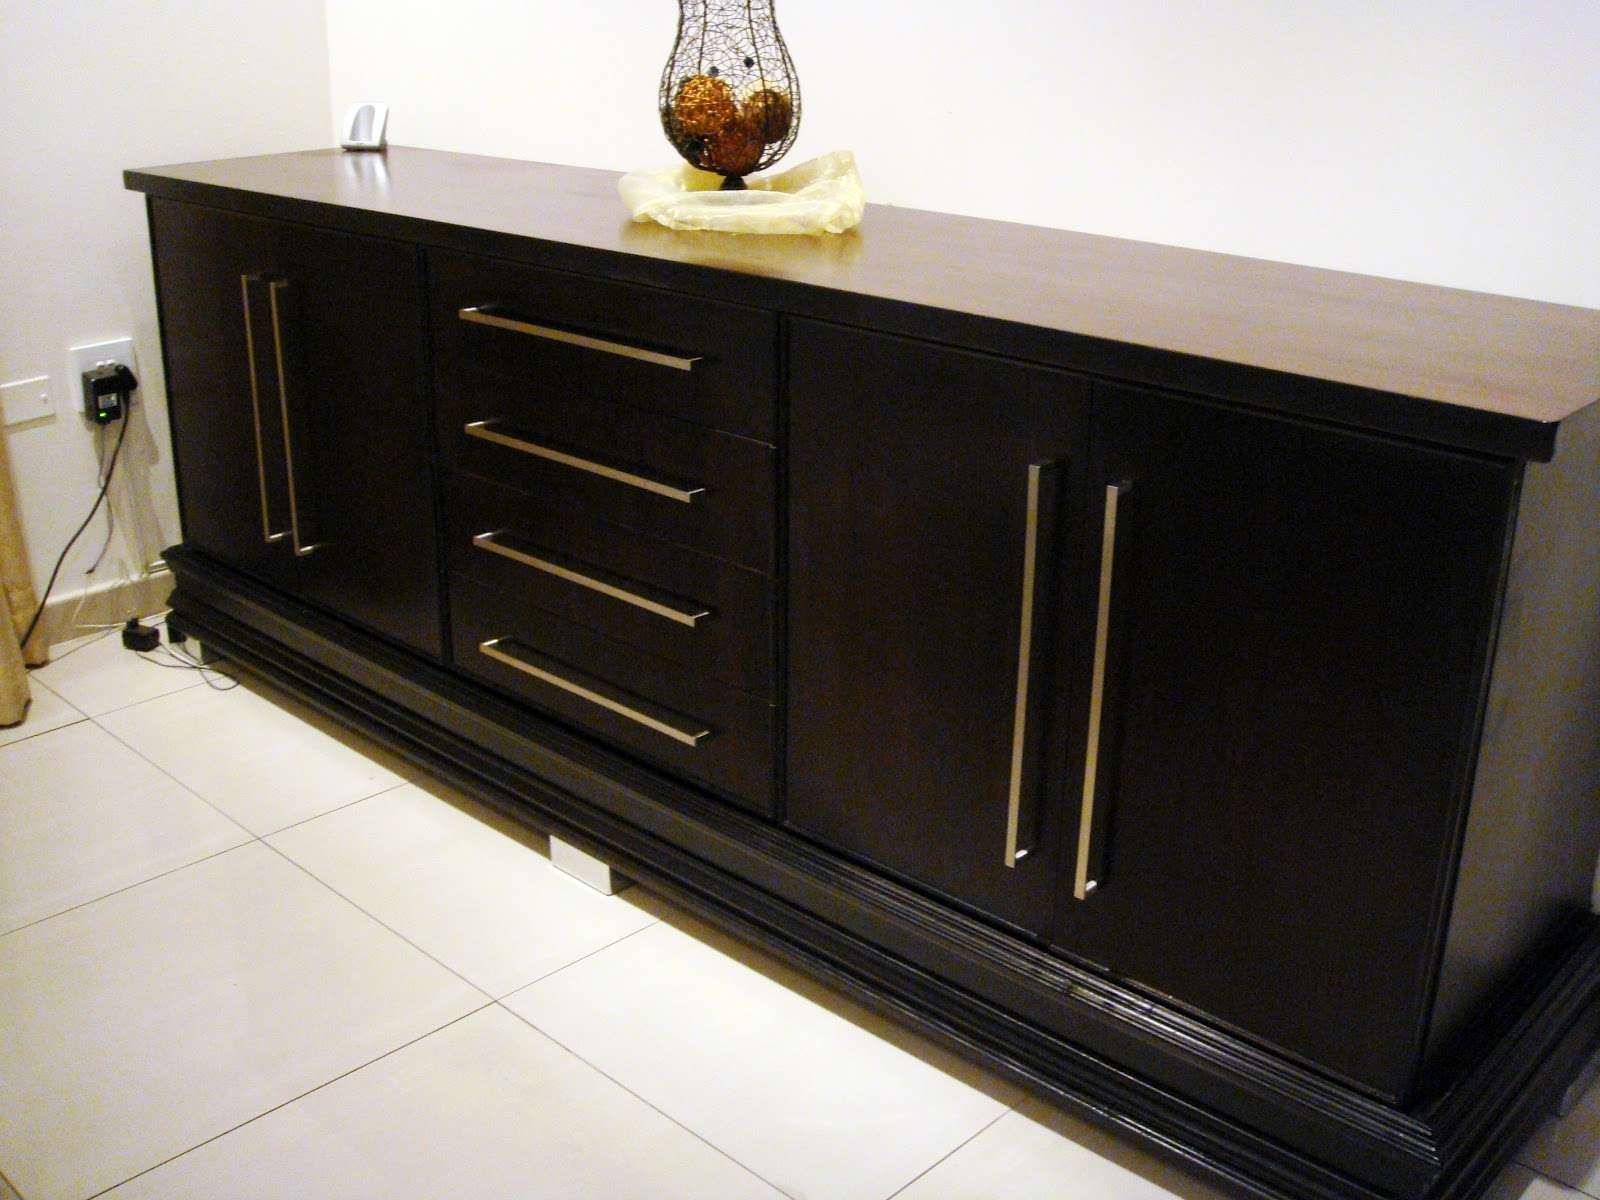 Dining Room Bar Sideboard   Latest Home Decor And Design Inside Dining Room Sideboards (View 6 of 20)